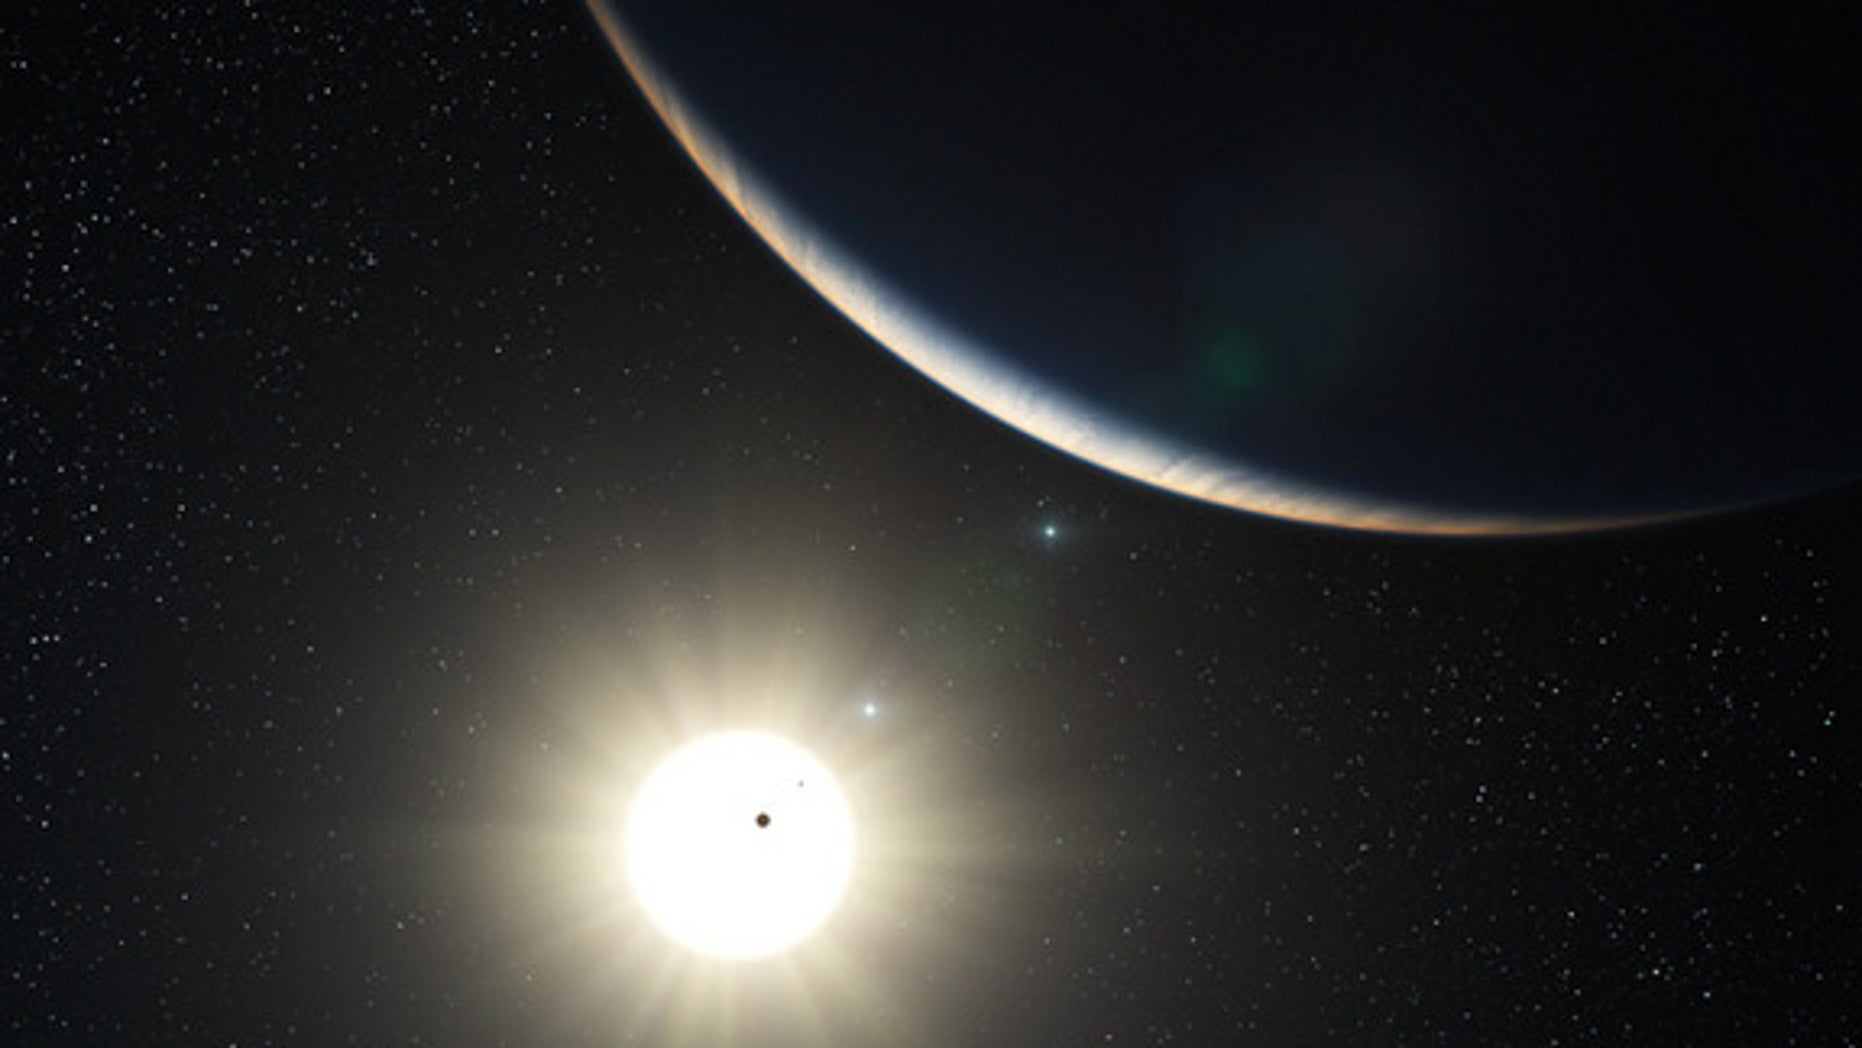 This artist's impression shows the remarkable planetary system around the sun-like star HD 10180.